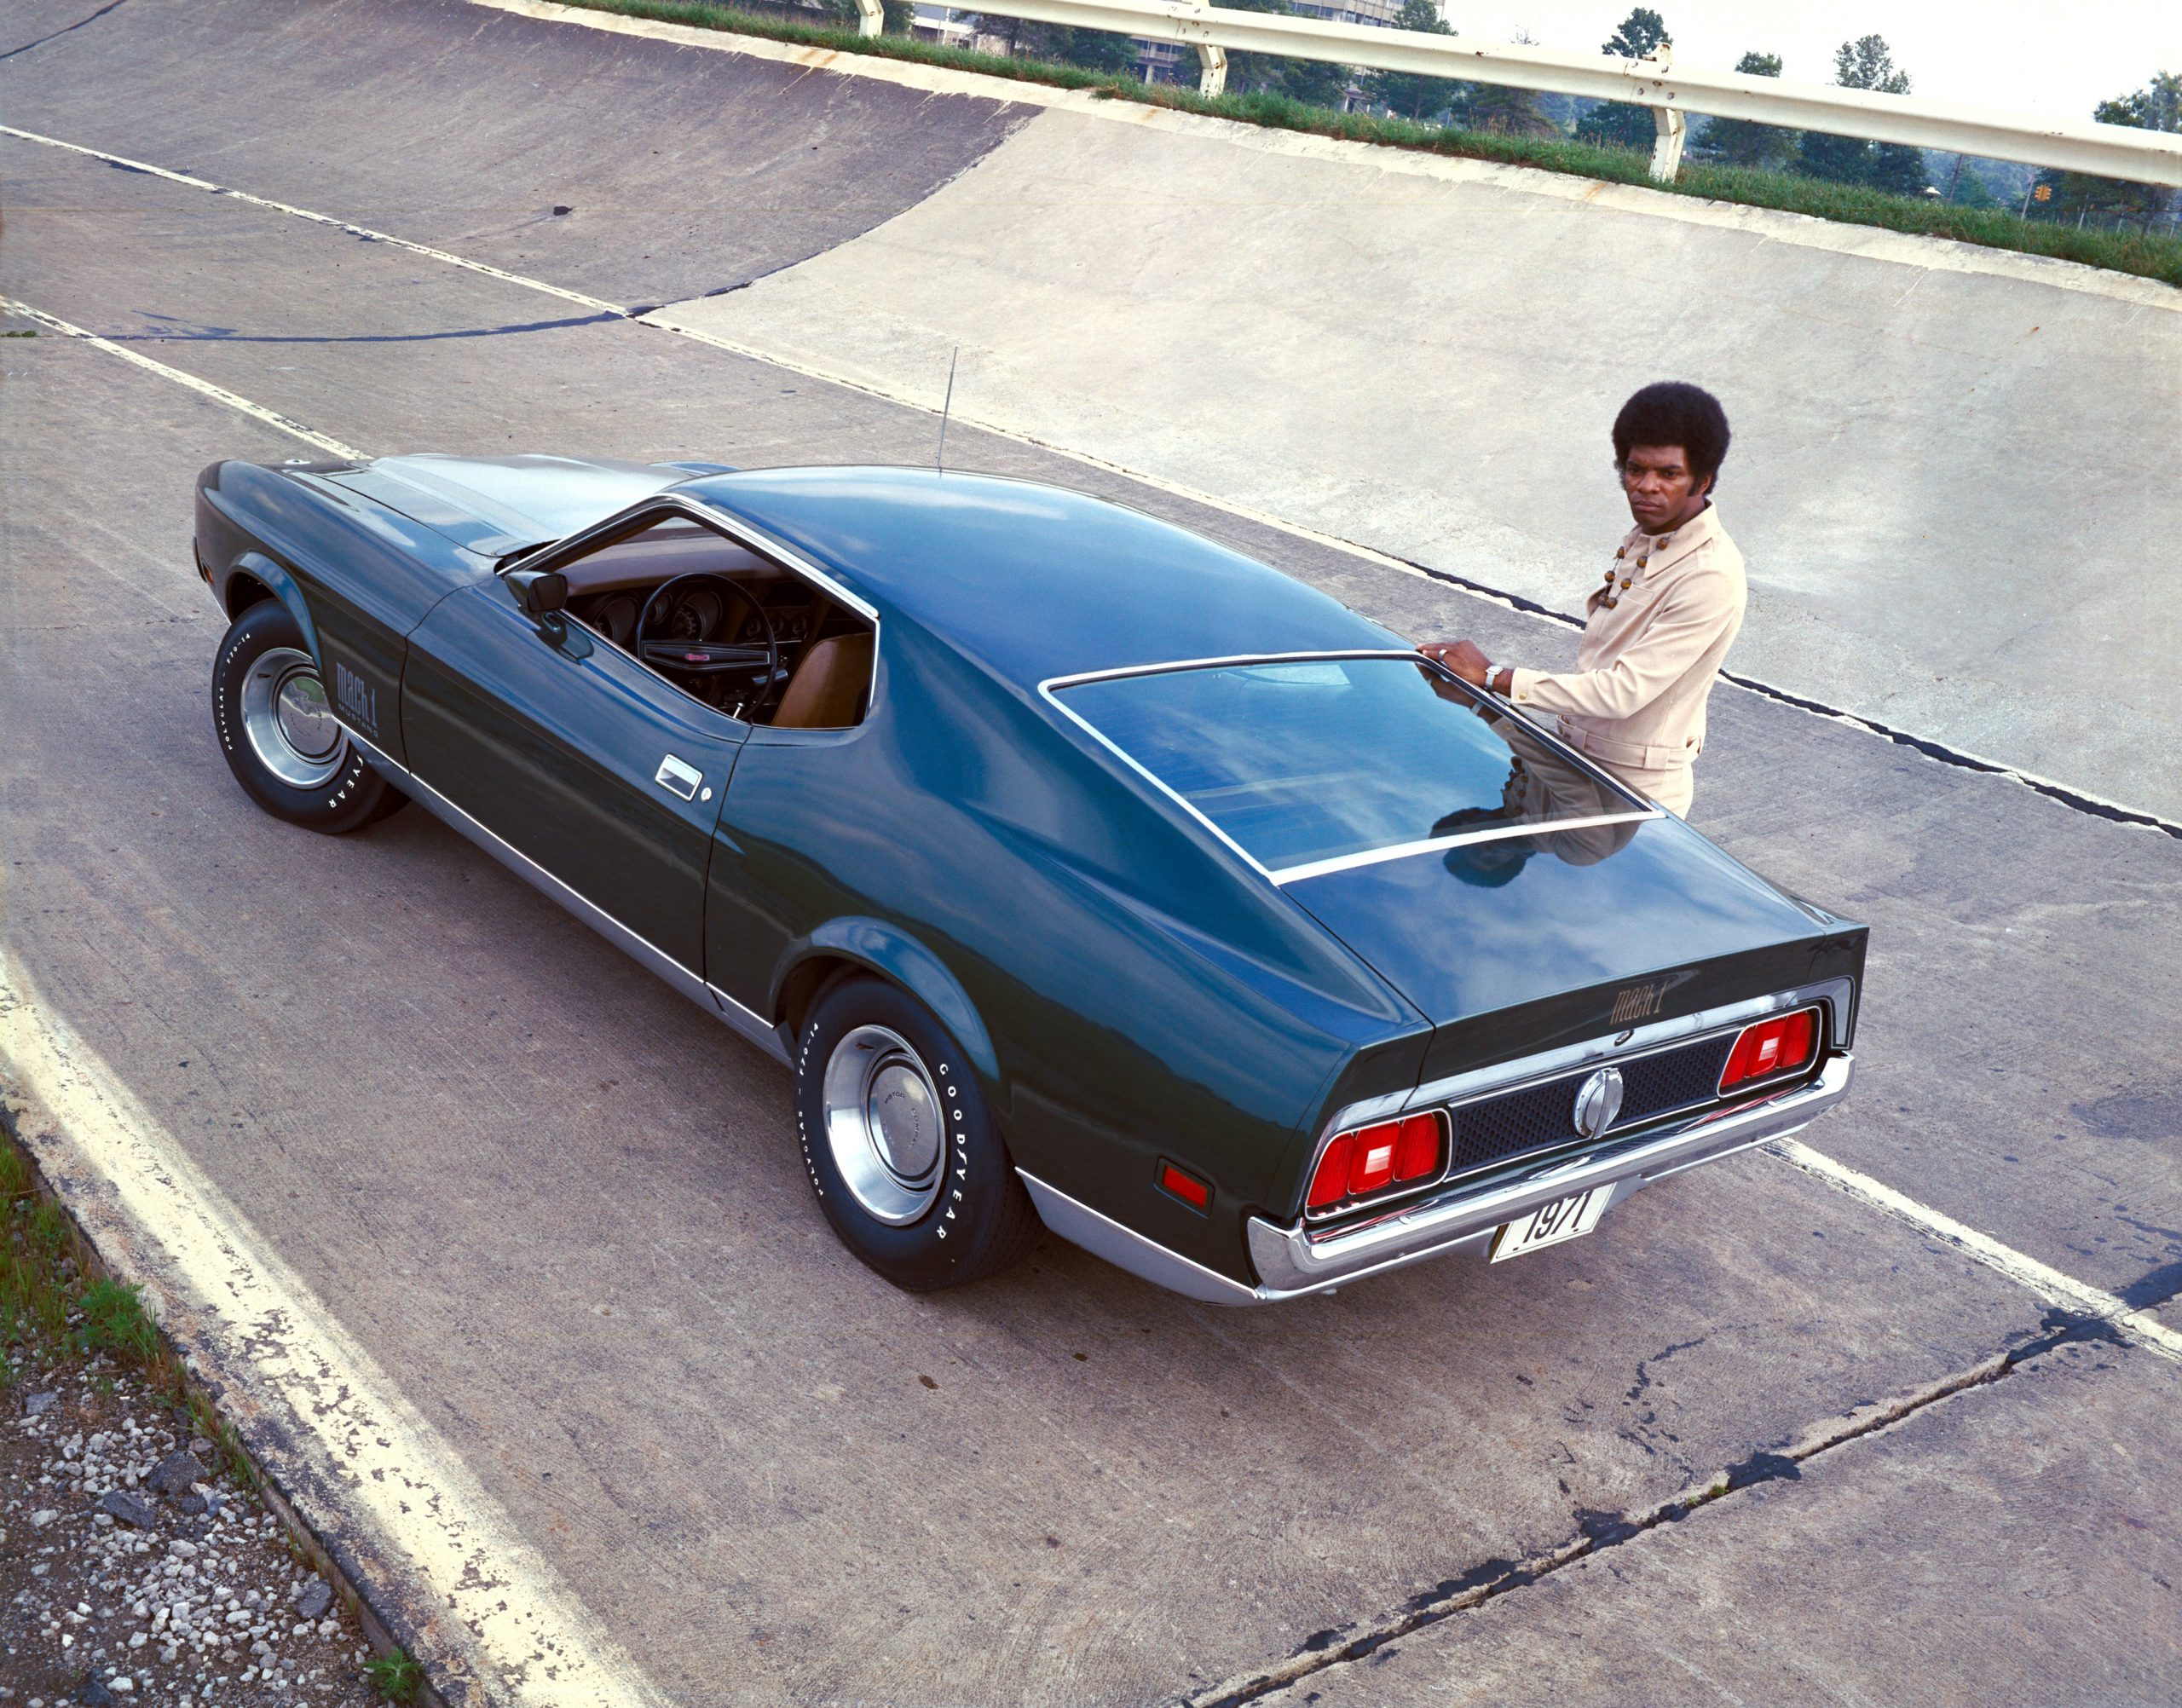 1971 Mustang Mach 1 Rear Three-Quarter At Track